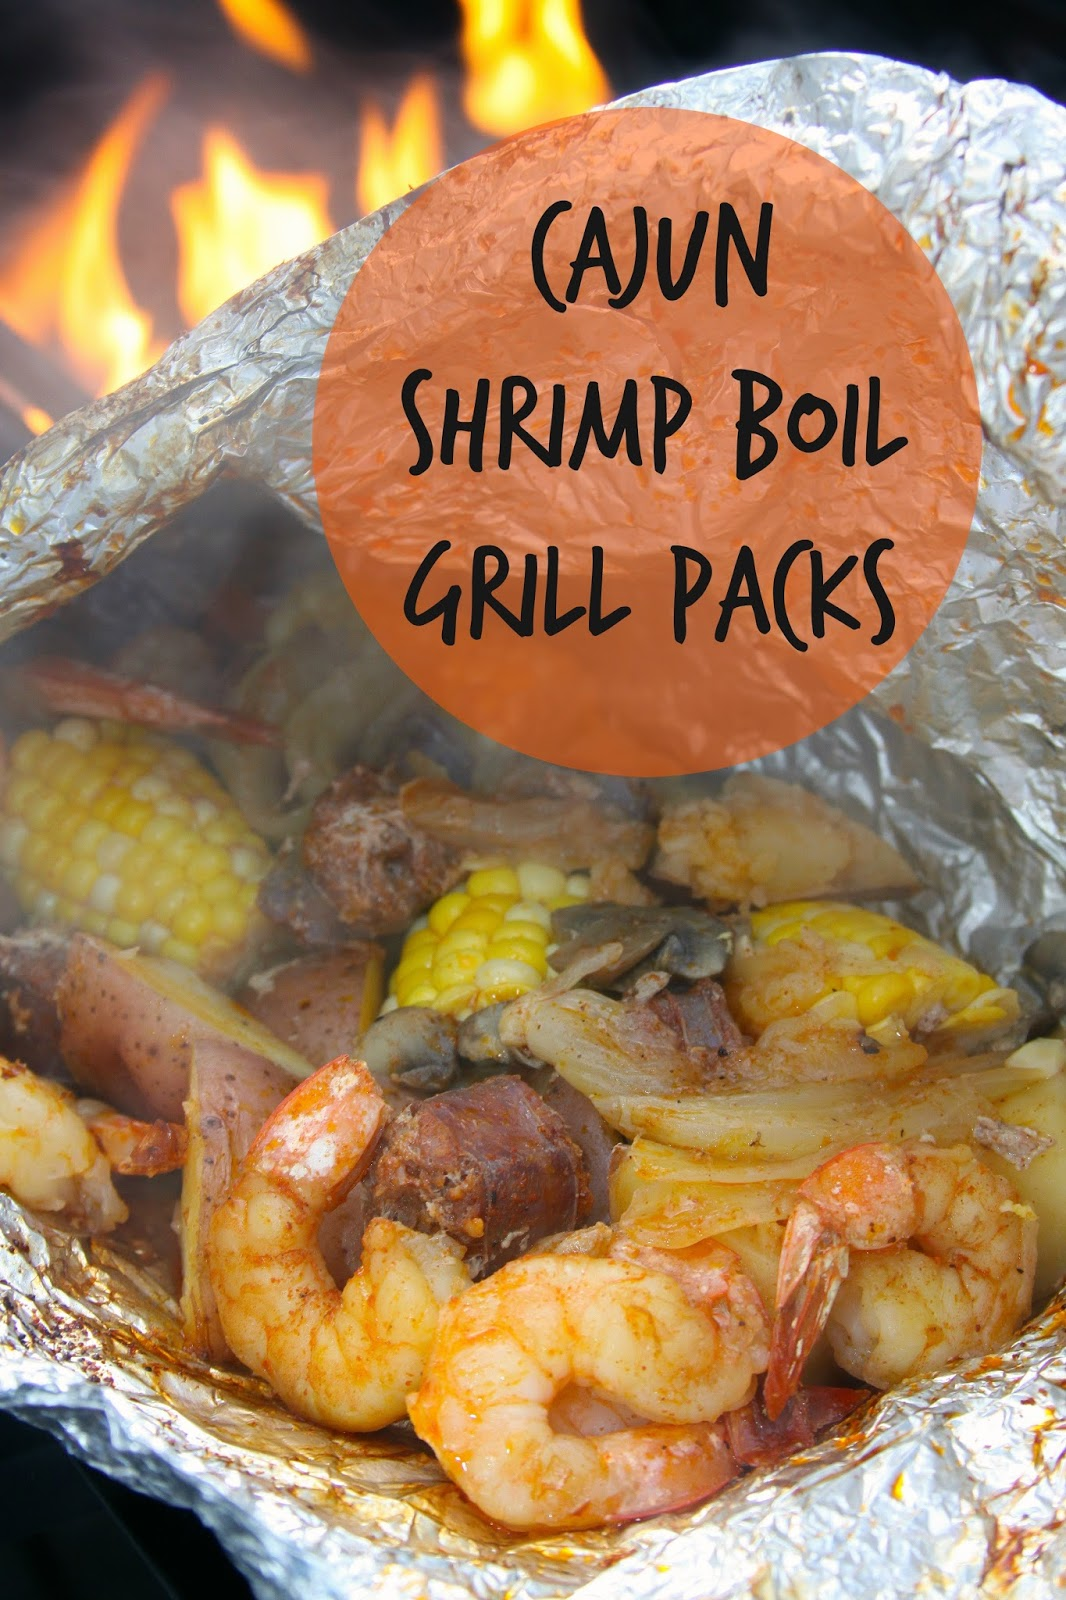 For the Love of Food: Cajun Shrimp Boil Grill Packs